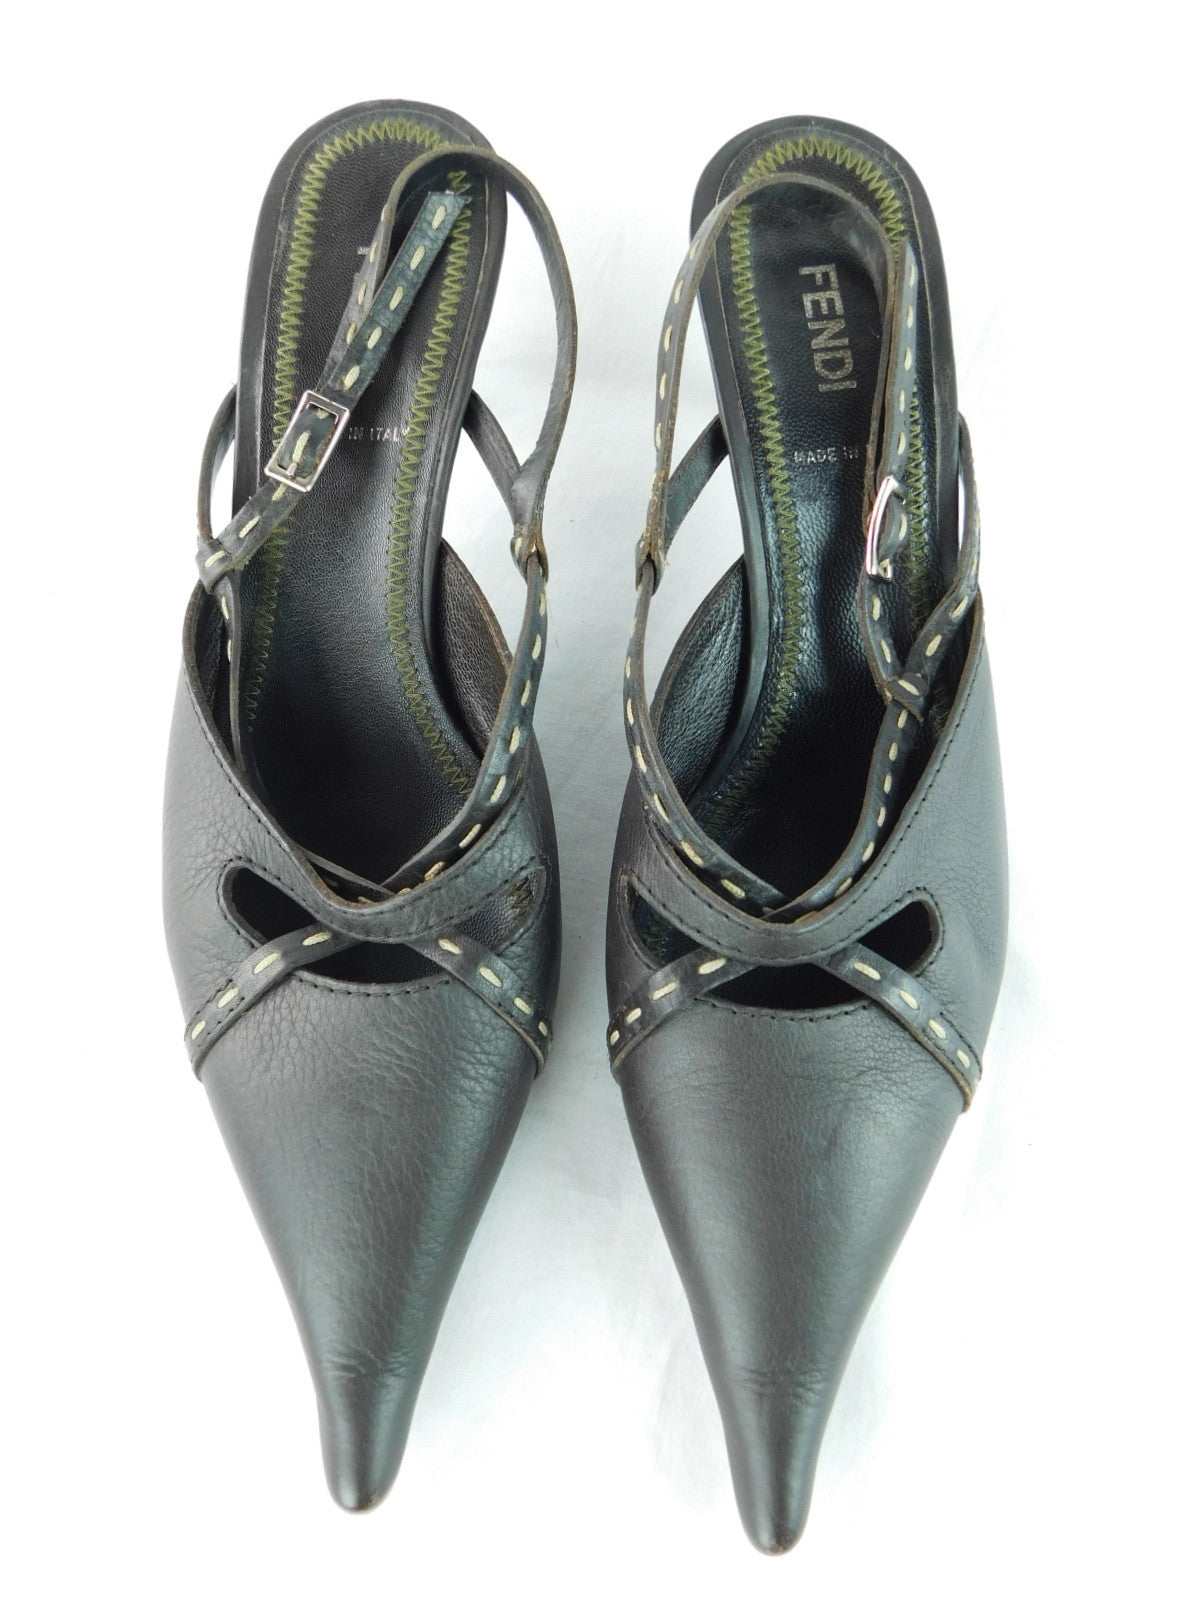 Fendi Leather Chocolate Top-Stitch Pointed Kitten Heels, Size 39/8.5